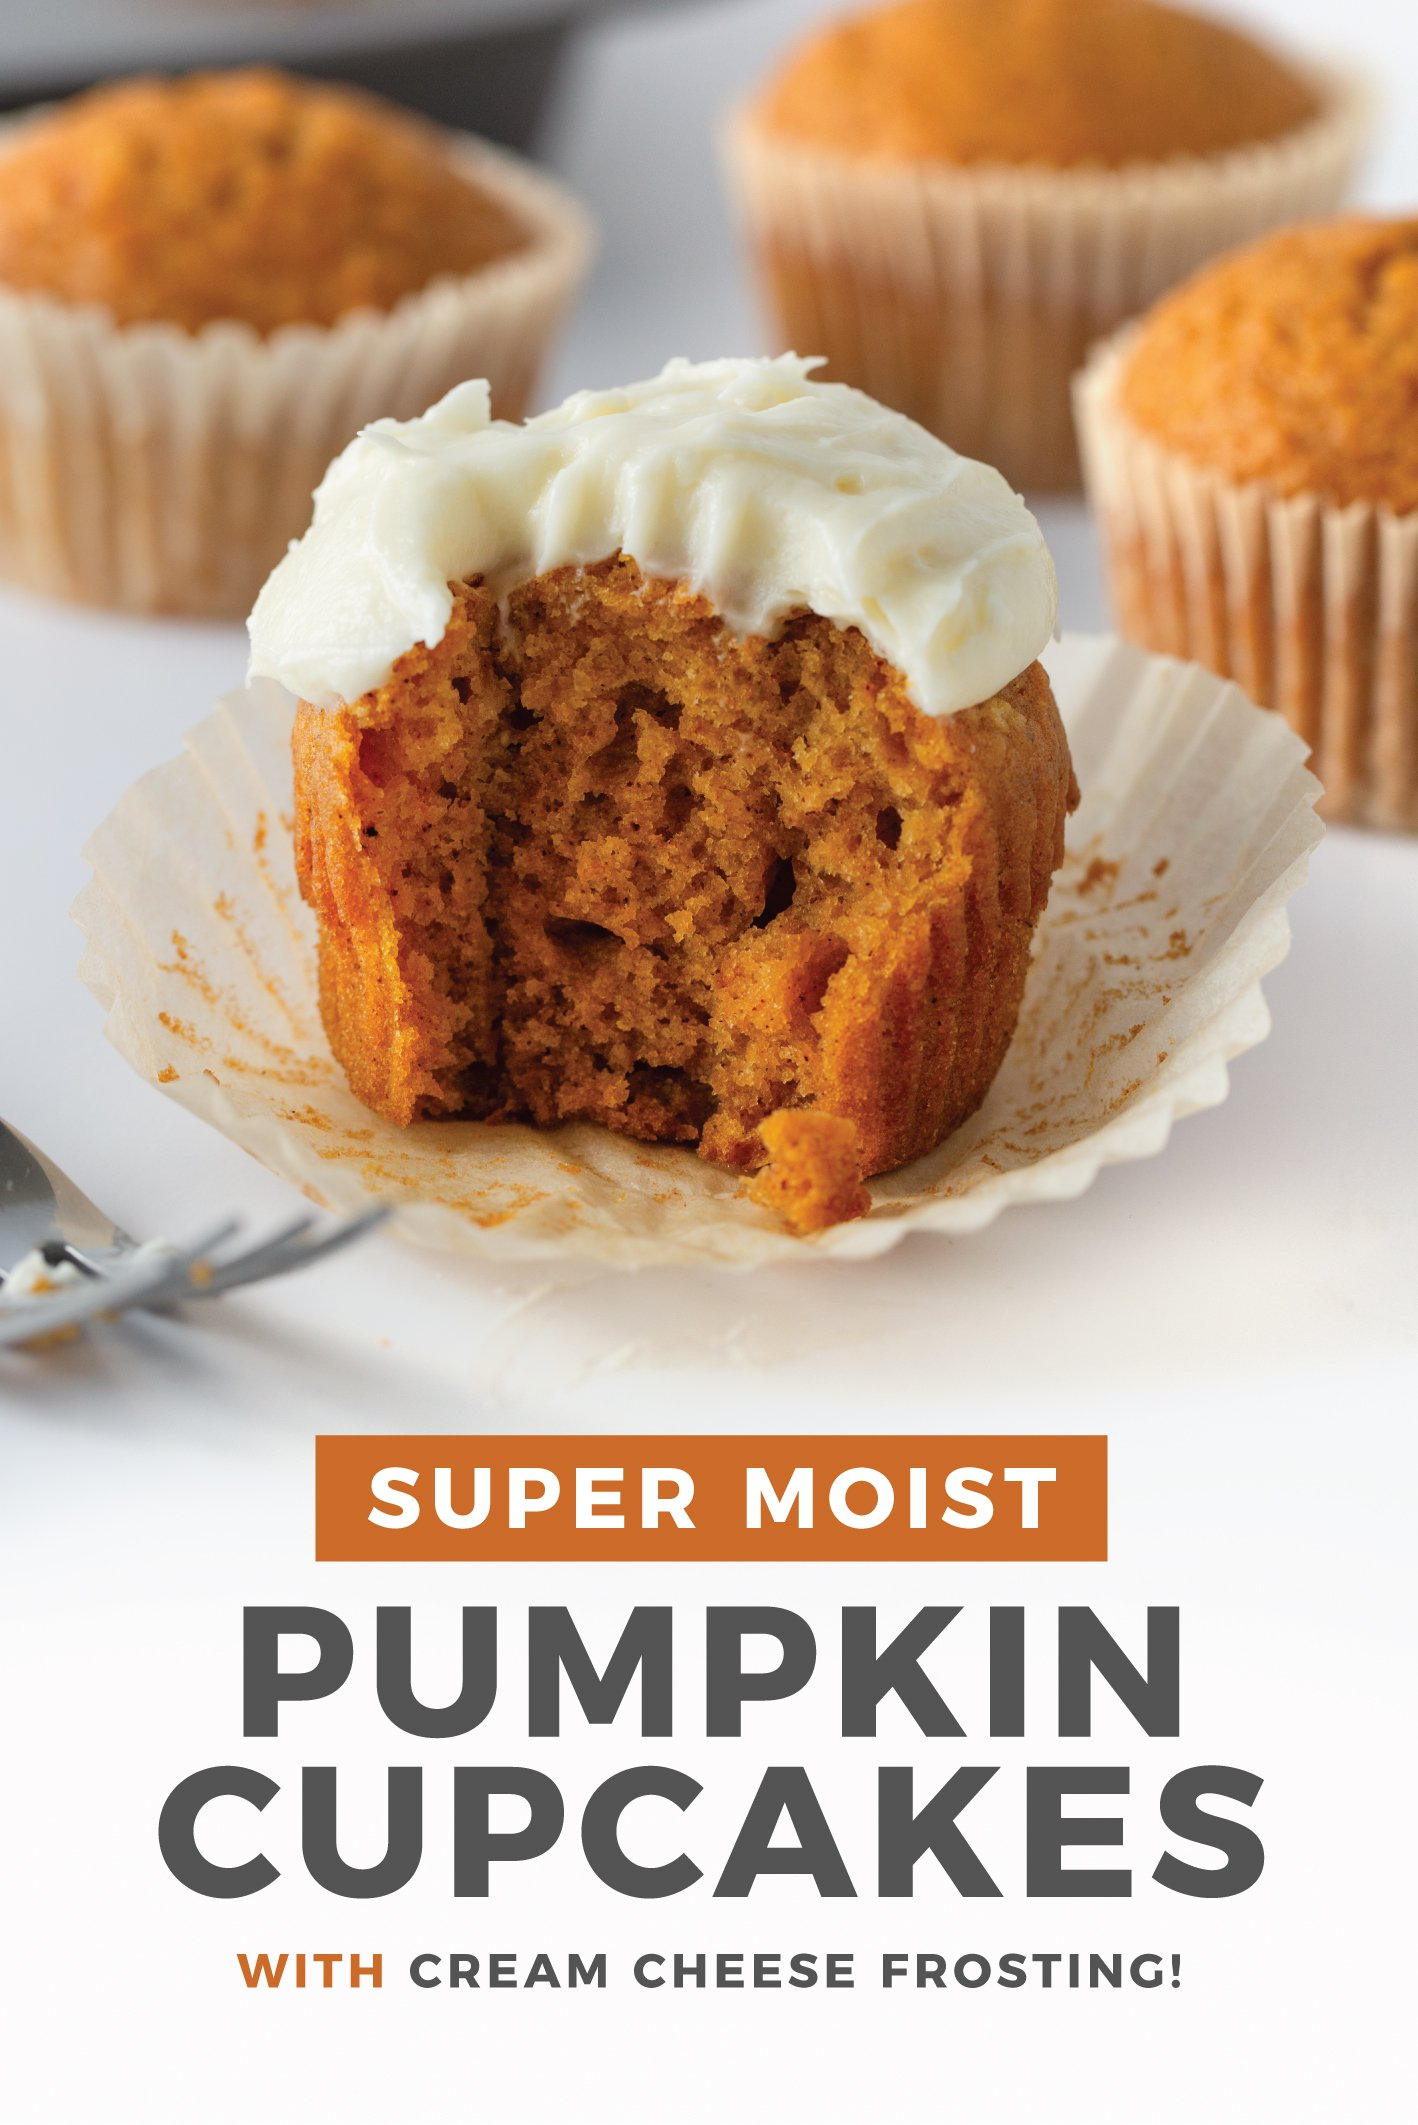 A super moist, melt-in-your-mouth EASY pumpkin cupcake topped with a 3-ingredient cream cheese frosting! Perfect Fall treats or Thanksgiving desserts. #pumpkin #thanksgiving #falltreats #falldesserts